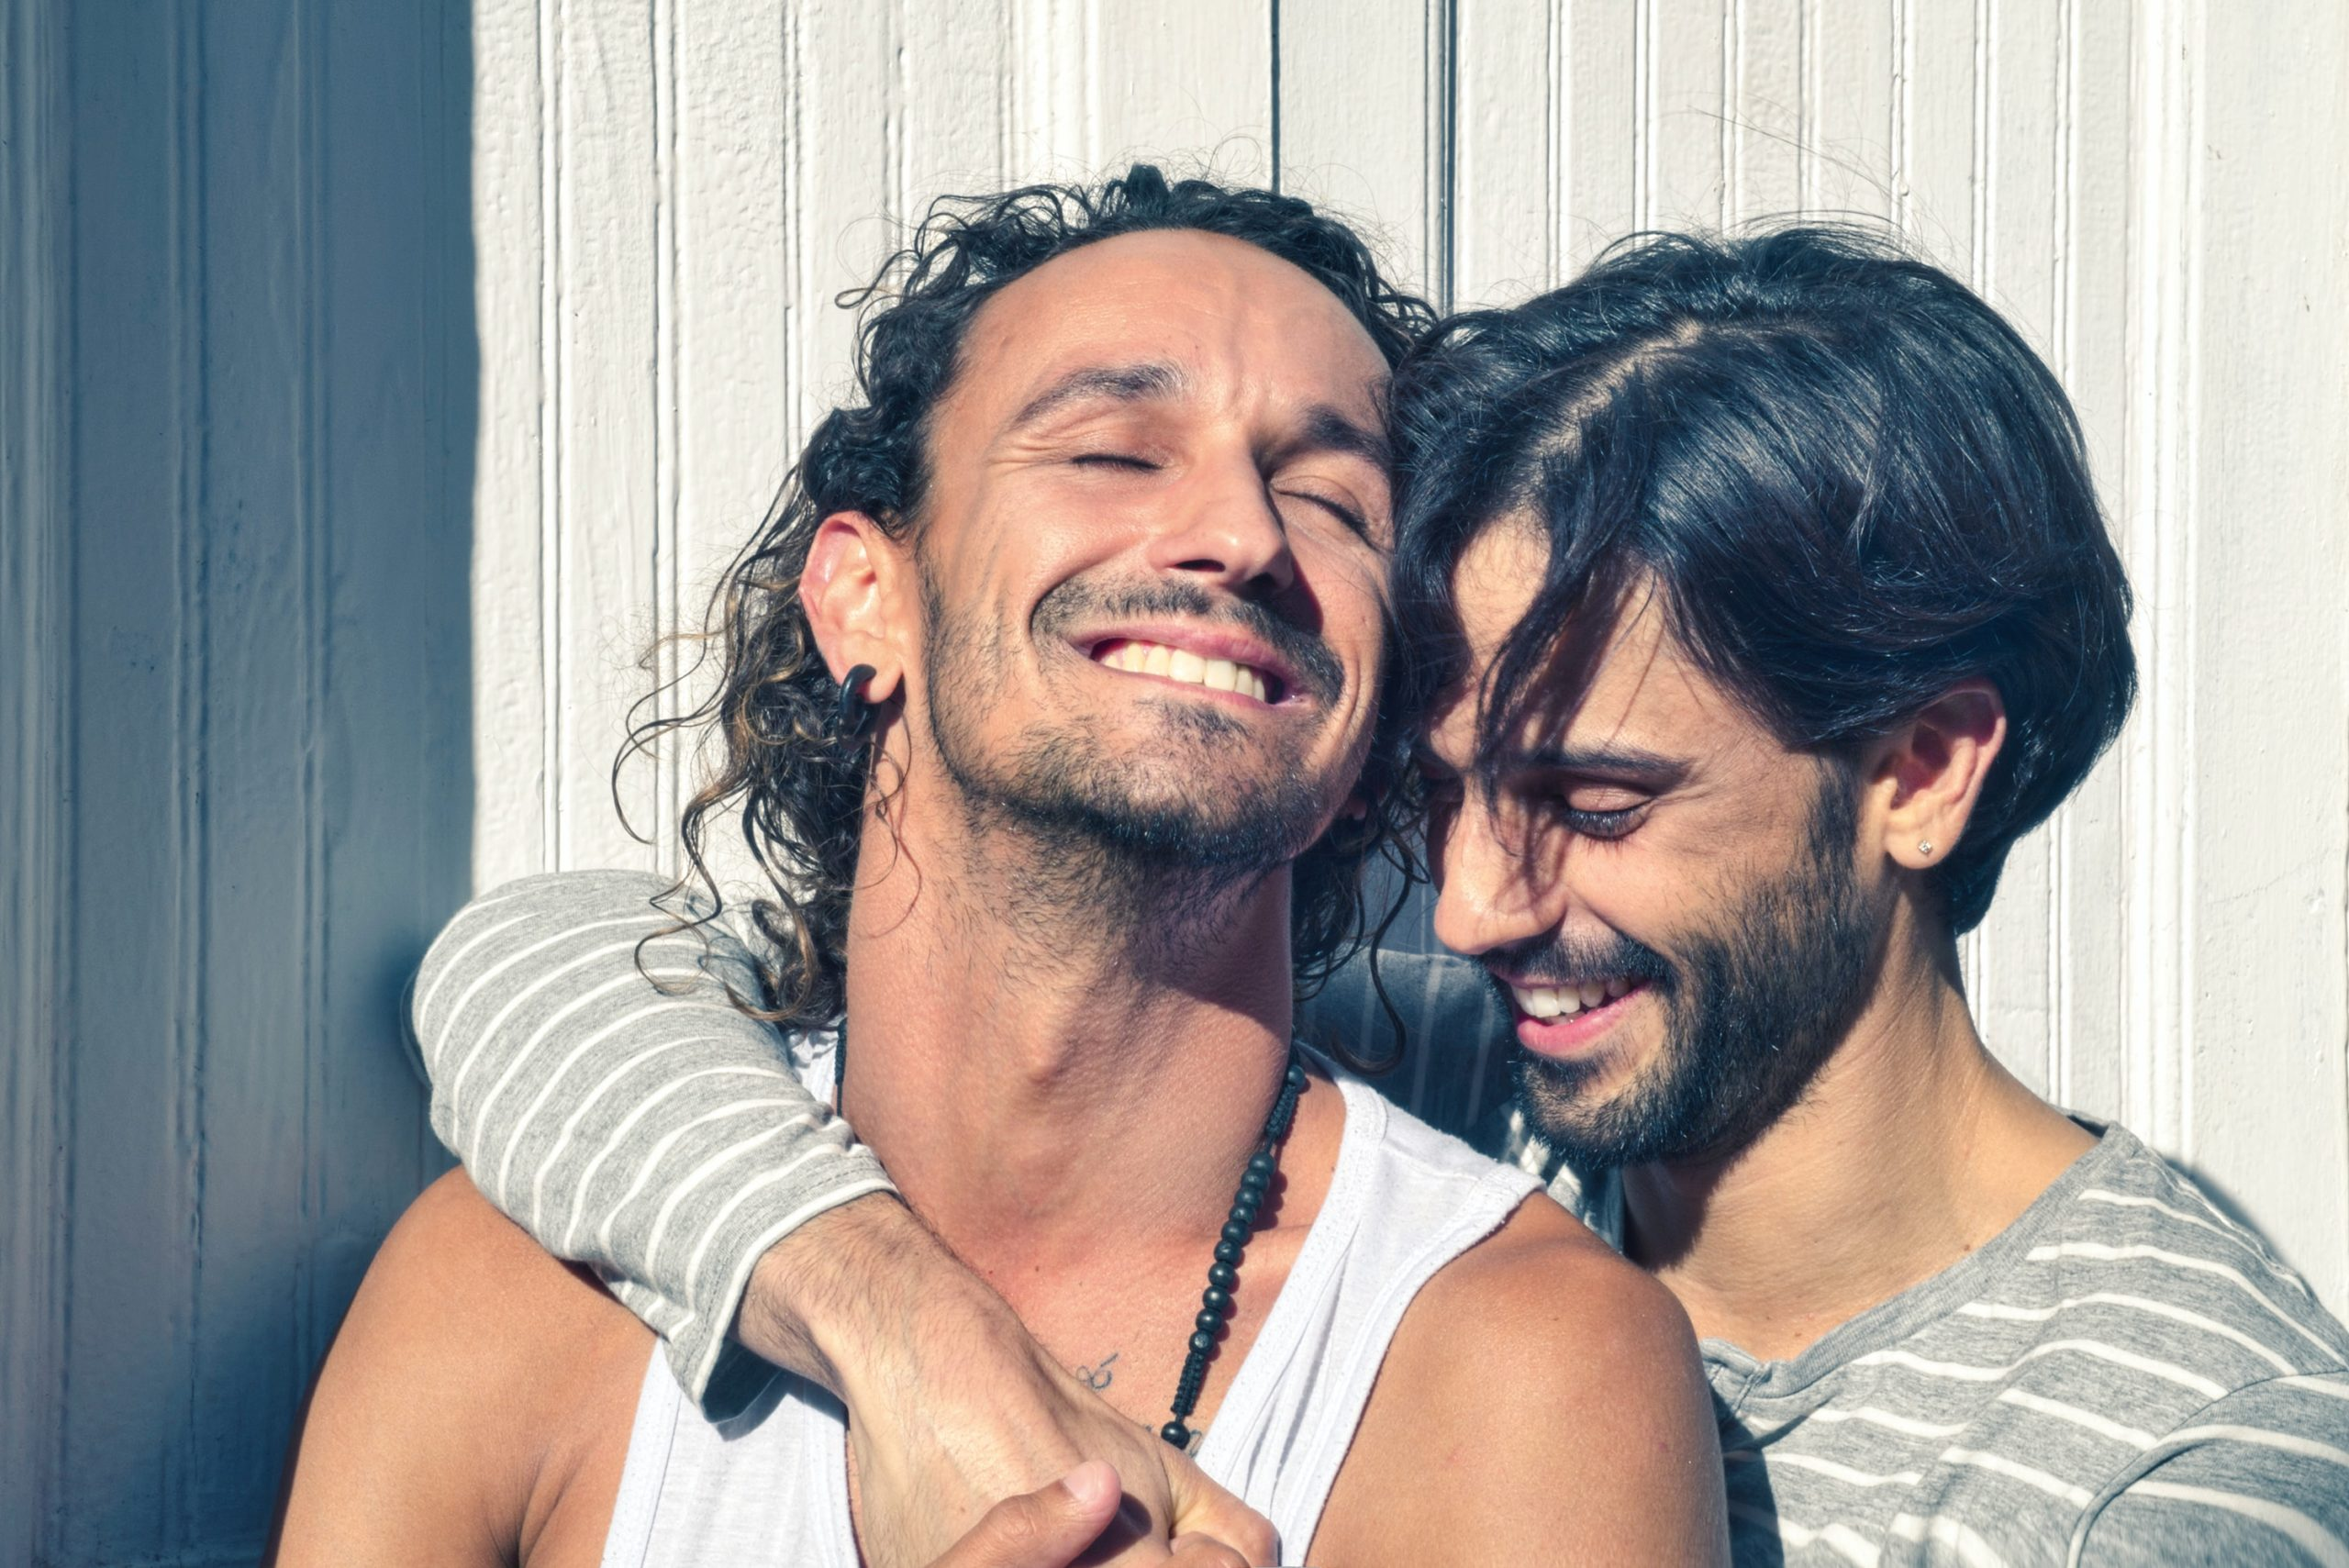 What same-sex couples can teach straight couples